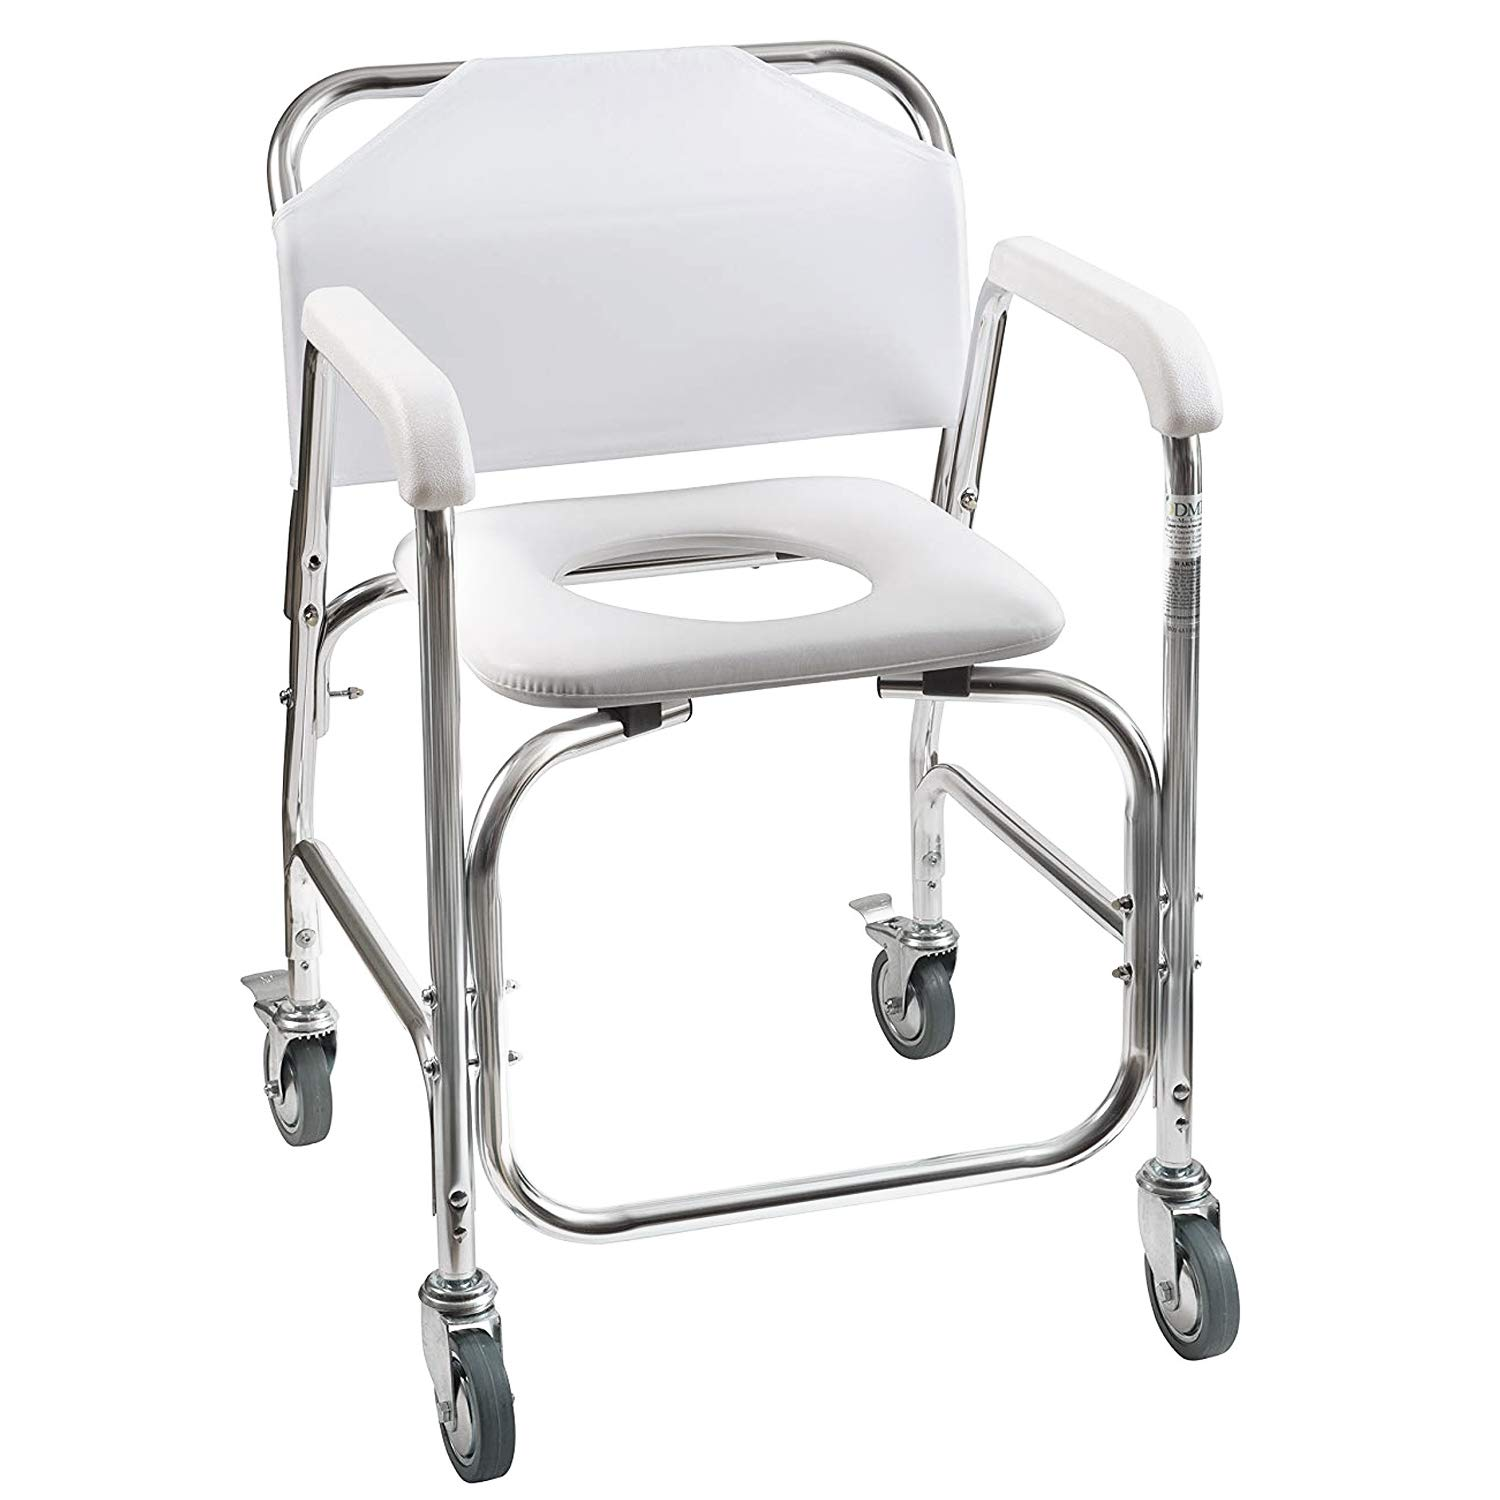 DMI Shower Transport Chair, Commode Chair for Toilet, Shower Chair with Wheels, Rolling Shower Chair with Padded Toilet Seat for Handicap and Seniors, White, 250 lbs Weight Capacity